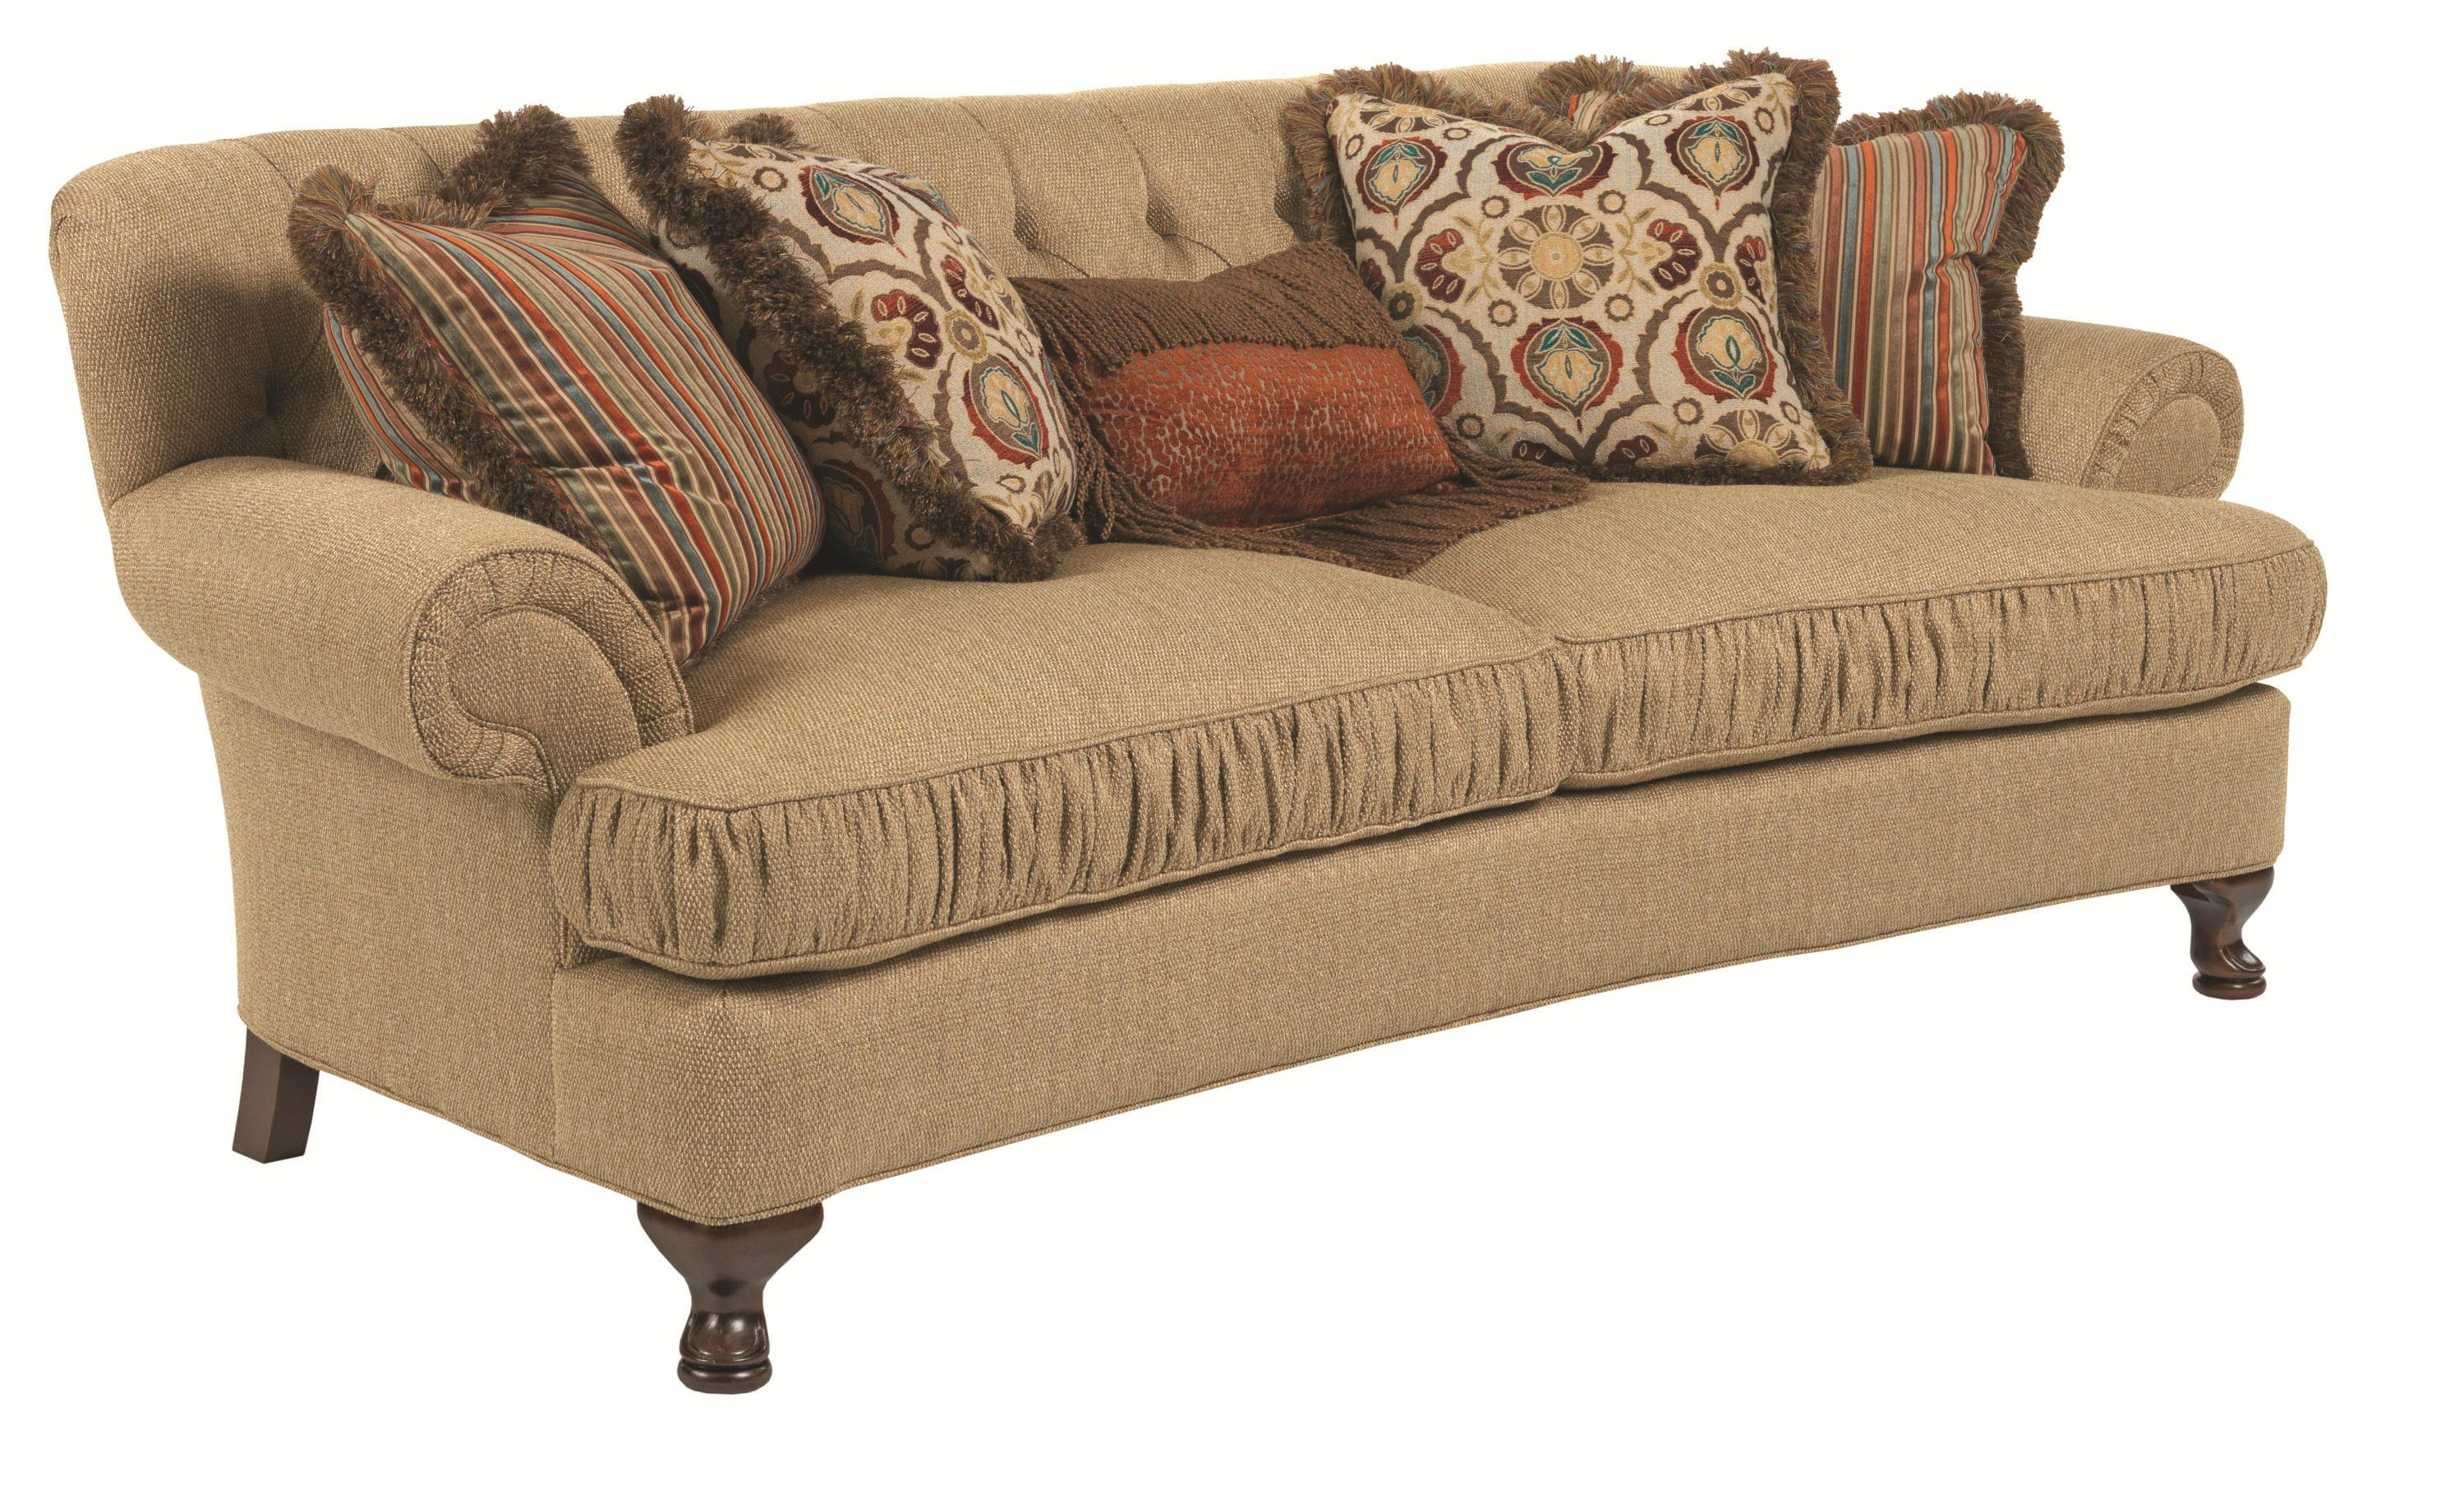 Traditional Sofas With Legs Hereo Sofa